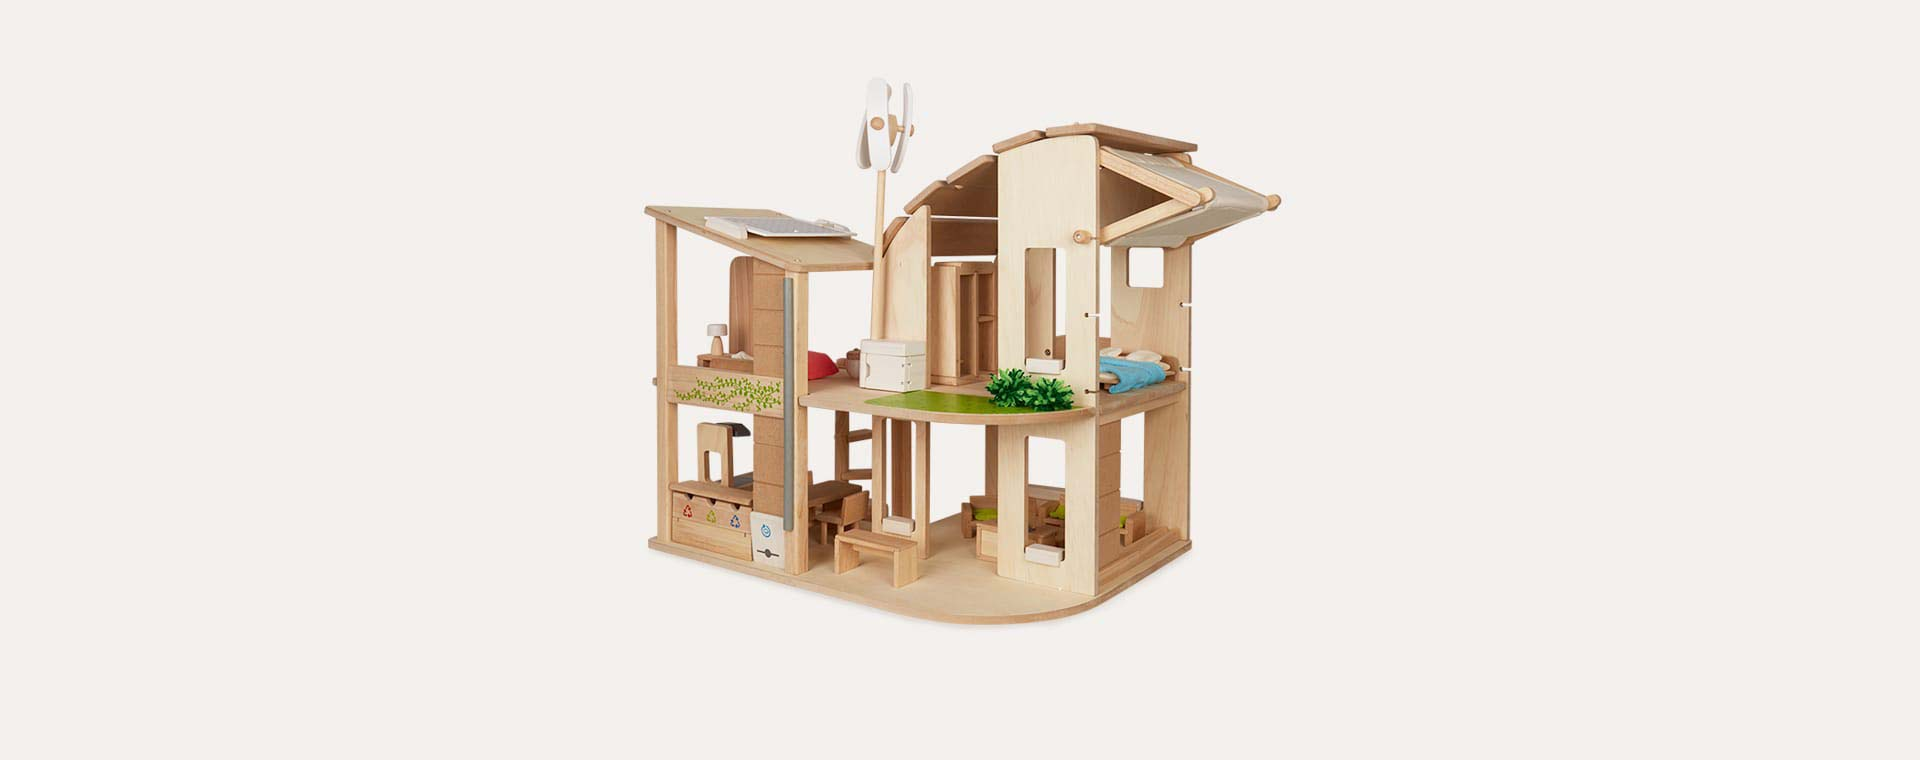 Neutral Plan Toys Green Dollhouse With Furniture